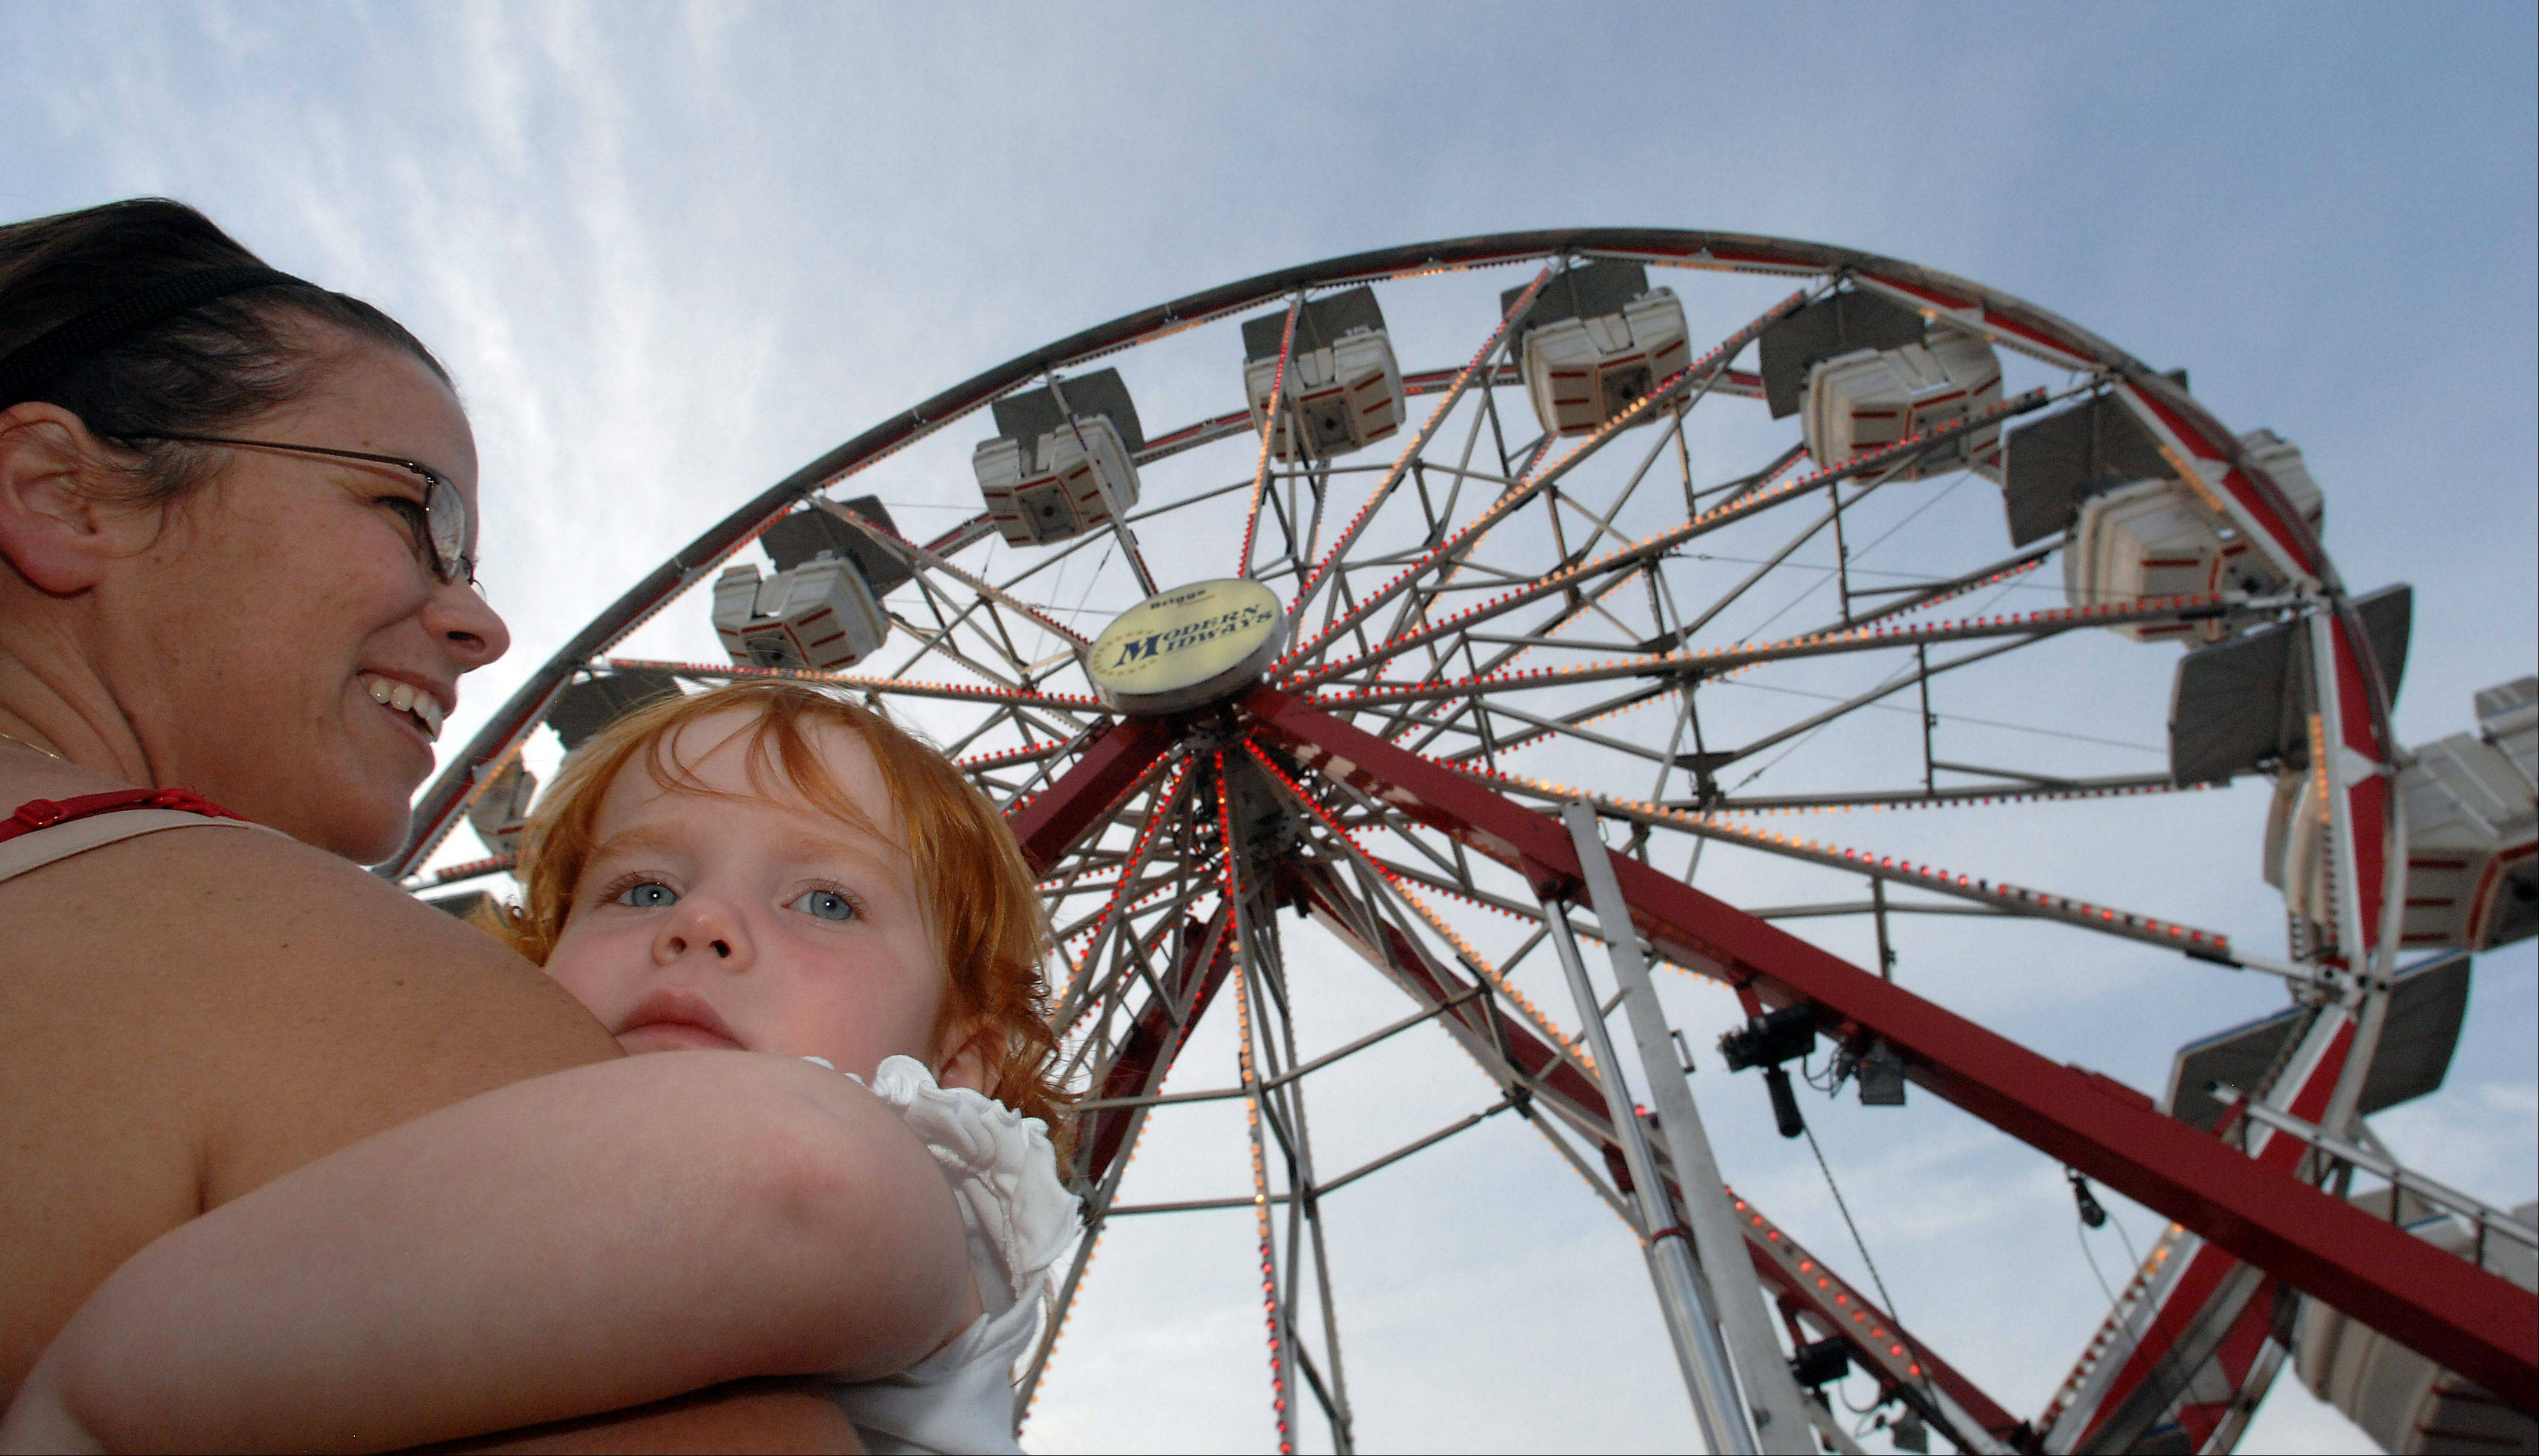 This Ferris wheel was part of the carnival at the 2010 St. Zachary Church Augustfest in Des Plaines.